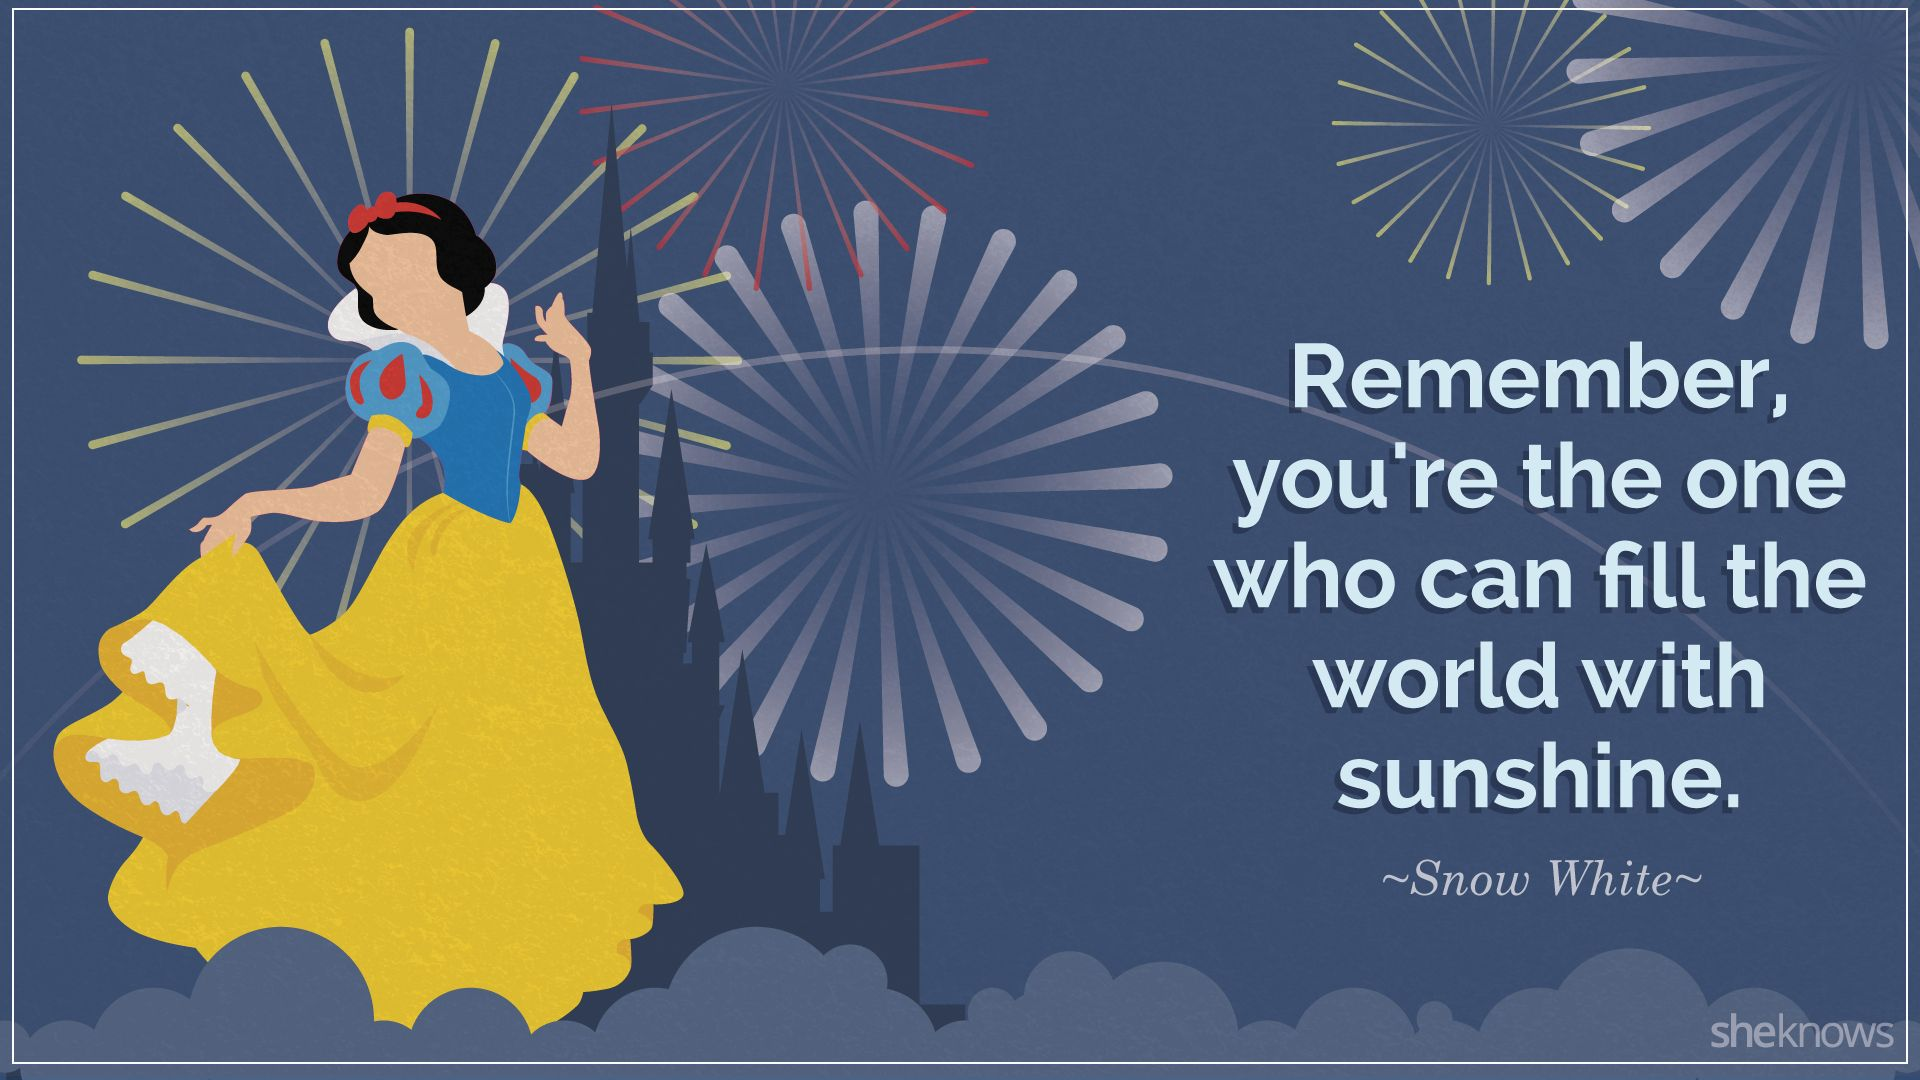 These uplifting sayings prove just how wise Disney